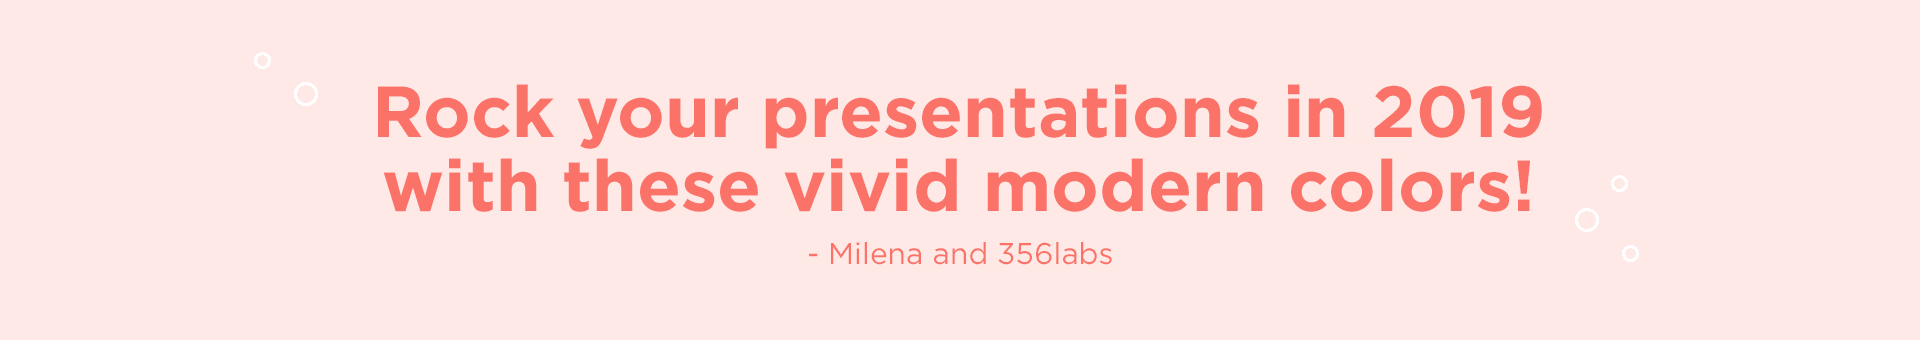 image with text for living coral. Rock your presentations in 2019 with these vivid modern colors